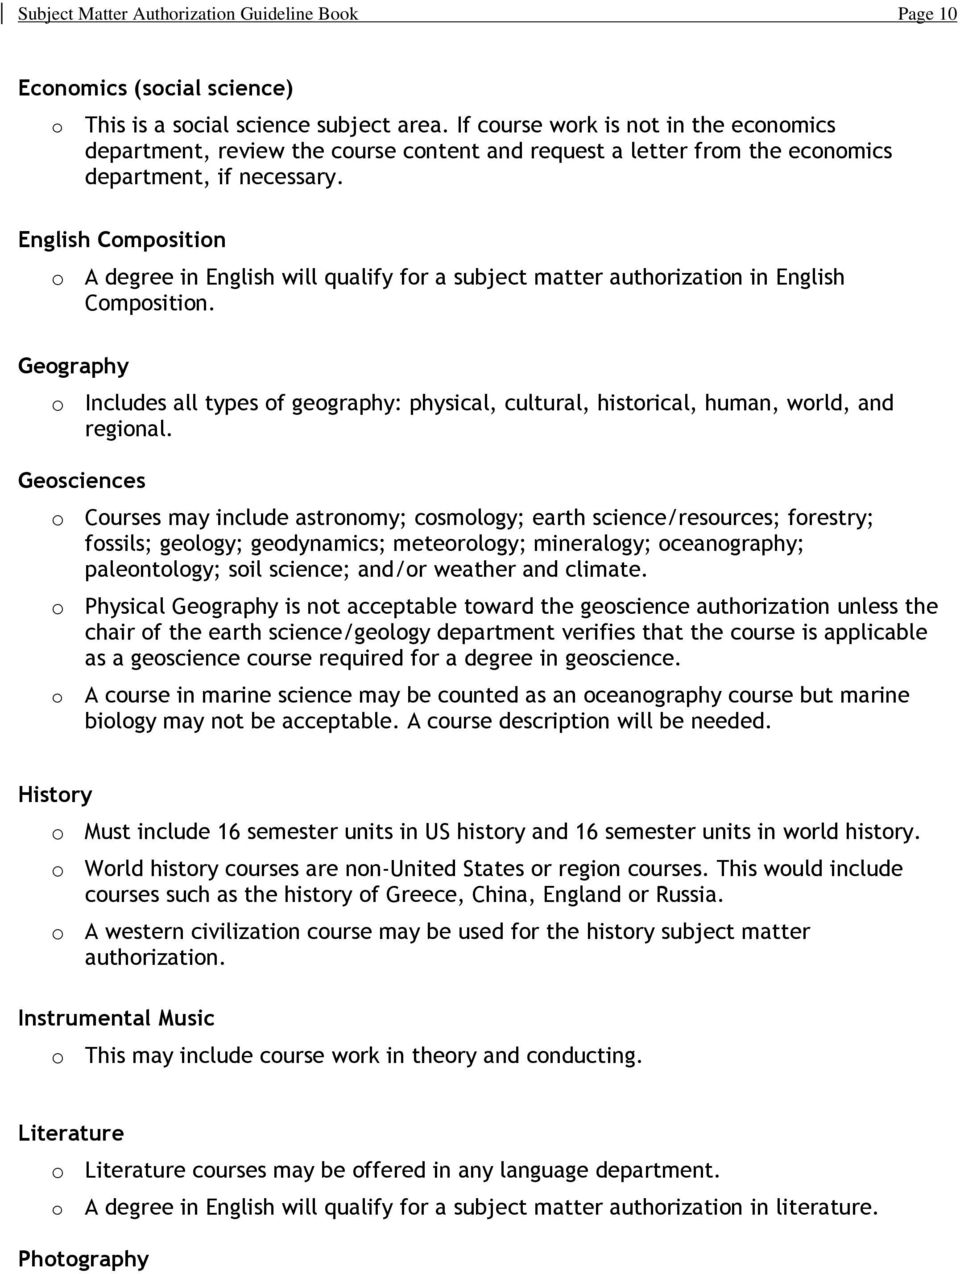 English Cmpsitin A degree in English will qualify fr a subject matter authrizatin in English Cmpsitin. Gegraphy Includes all types f gegraphy: physical, cultural, histrical, human, wrld, and reginal.